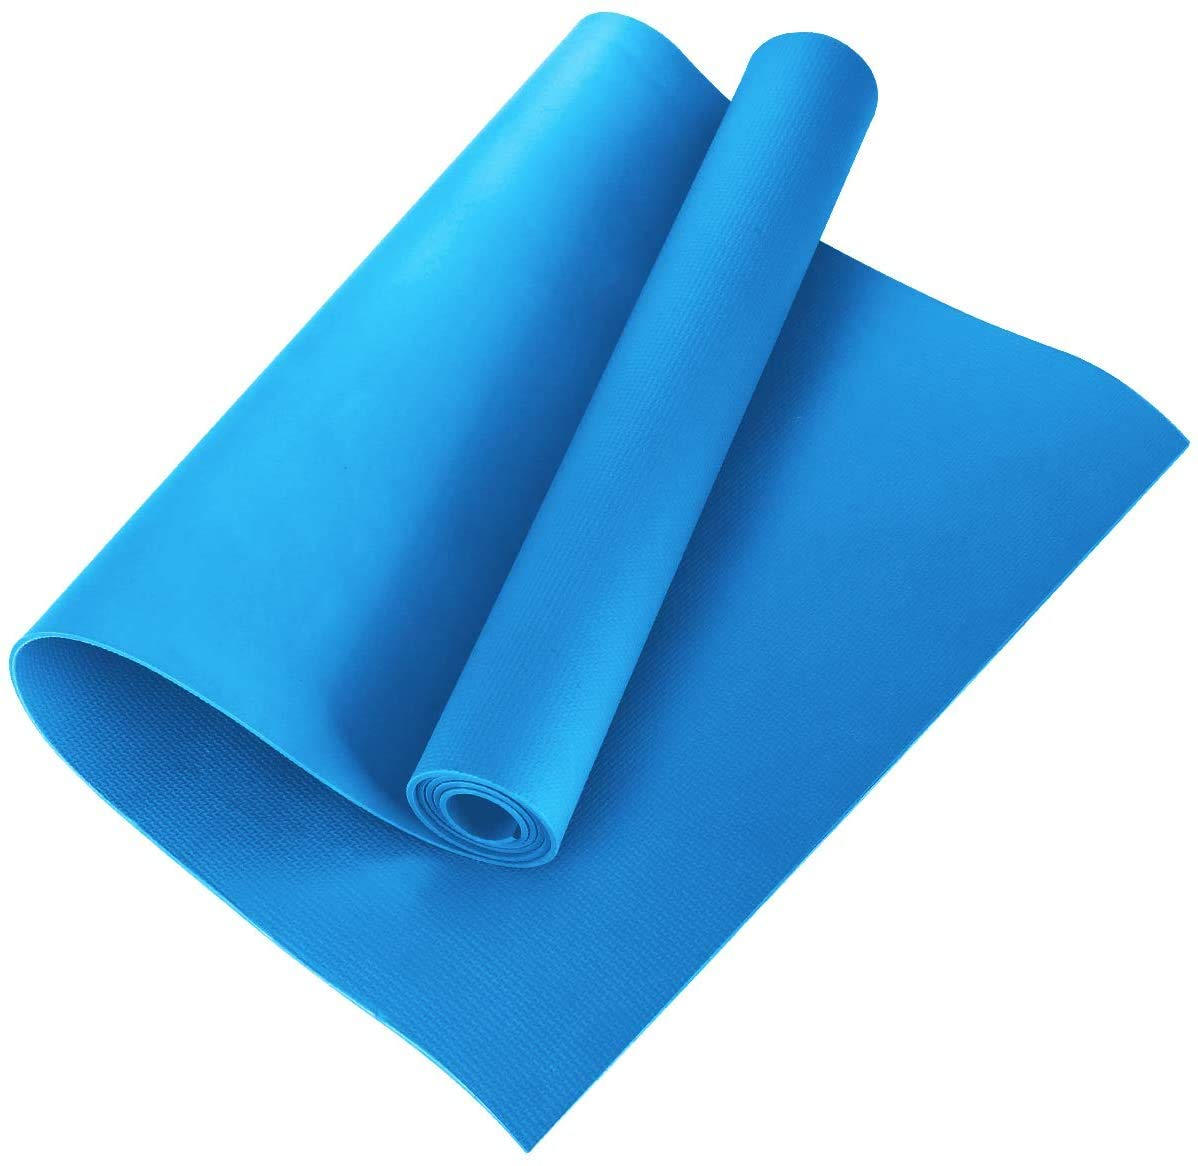 ARNV Yoga and Exercise Mat